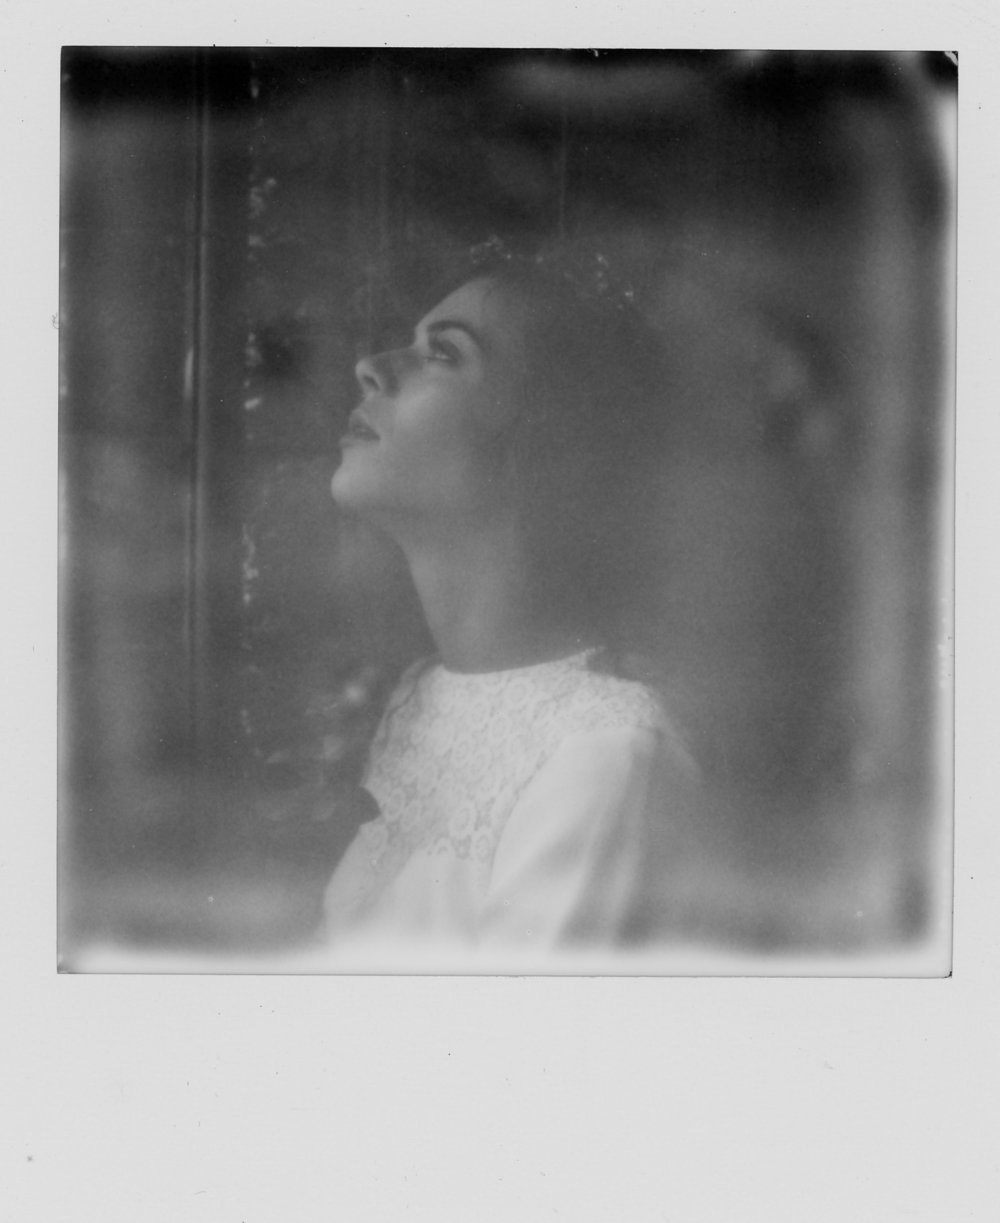 Model Freya is wearing a Frock and Soul wedding dress at Victoria Baths in Manchester. She is looking up at the window with the light on her face. This image is on a black and white Polaroid taken with an SX-70 Camera.